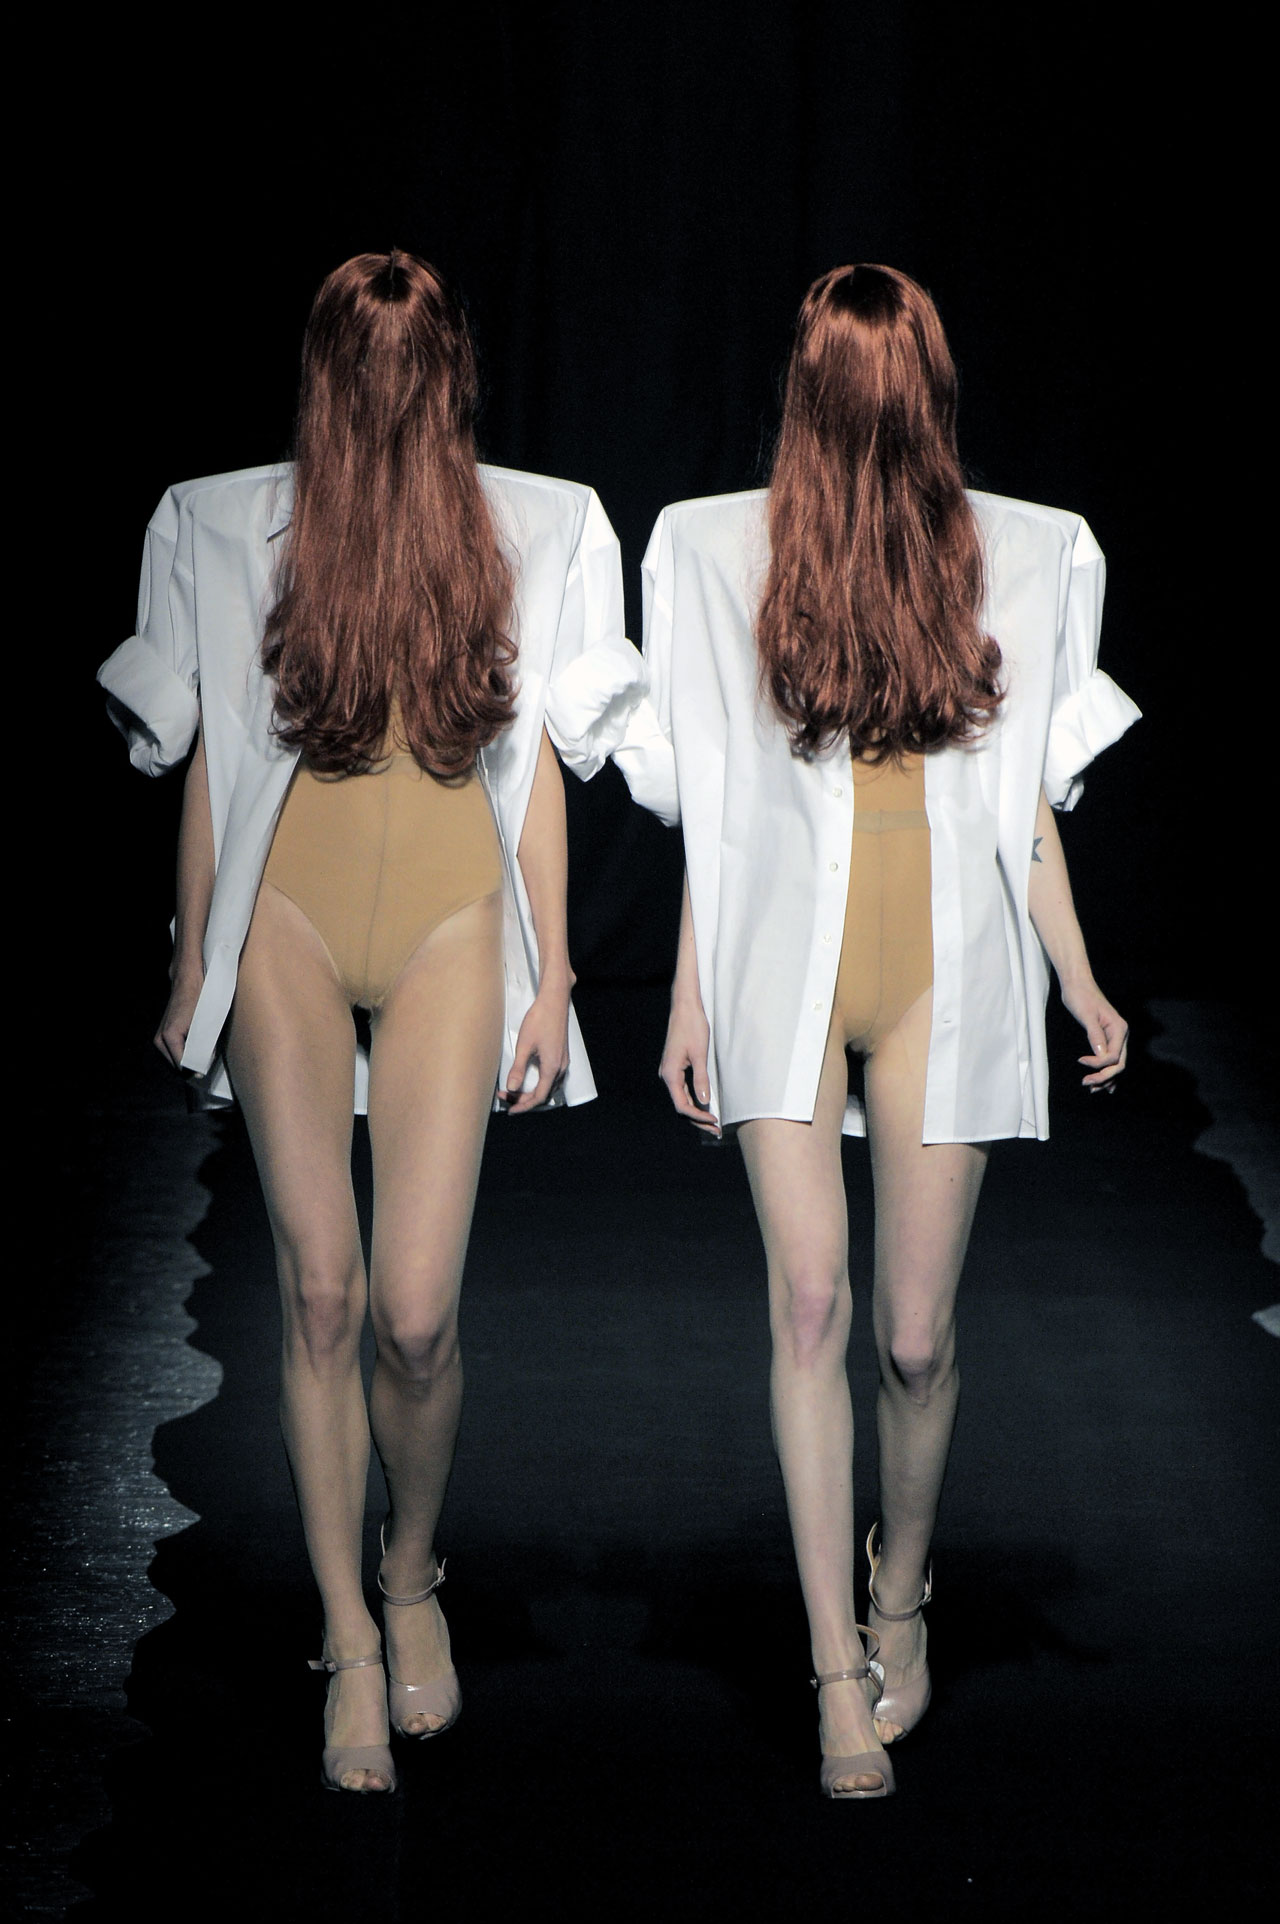 Maison Martin Margiela SS 2009.Photo © Etienne Tordoir.